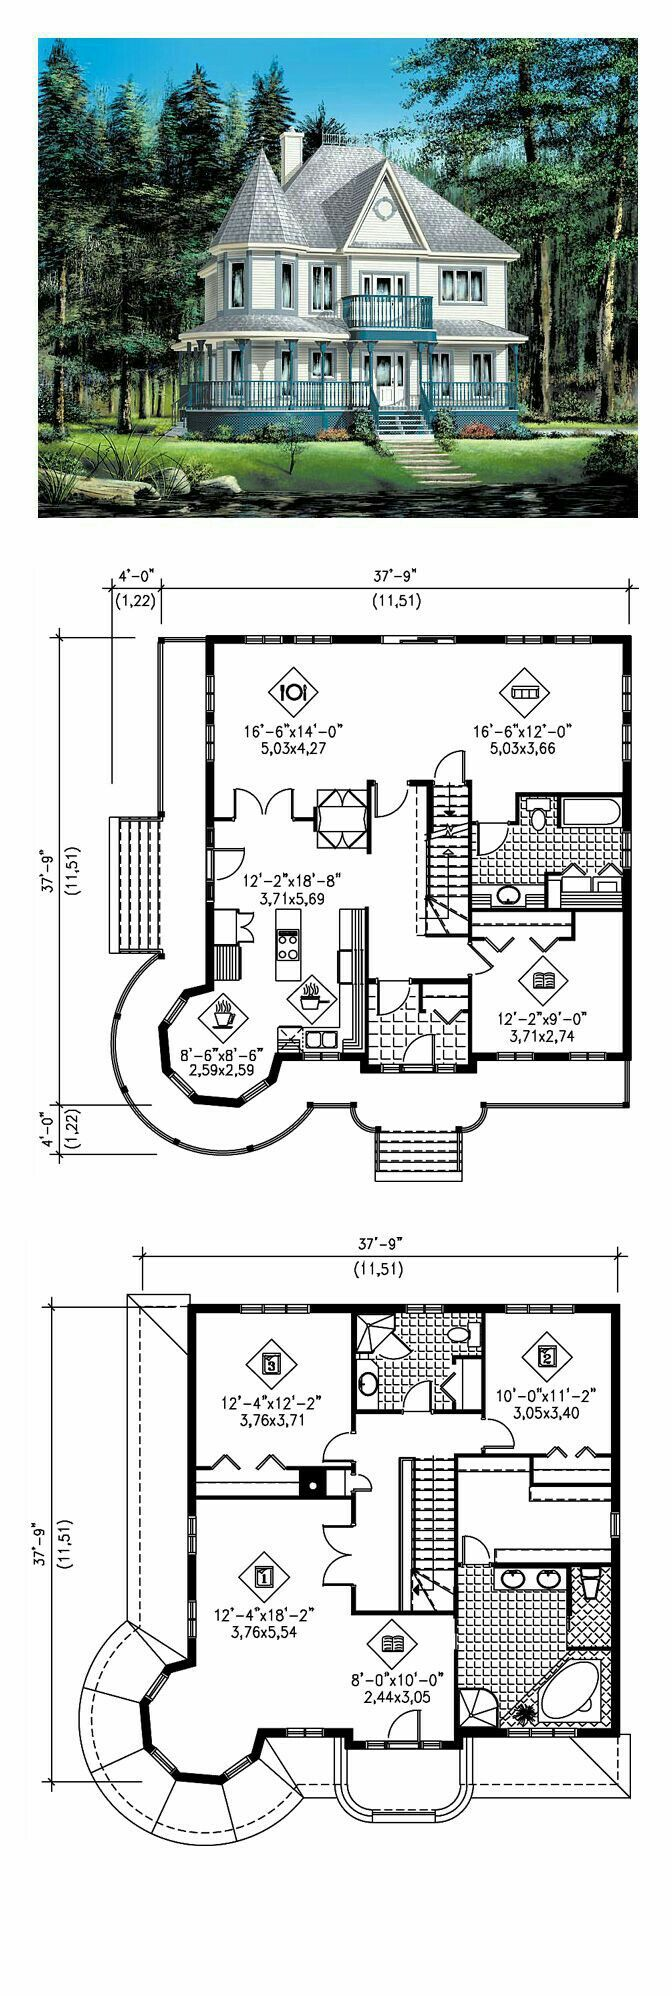 Loove this plan dream house plans